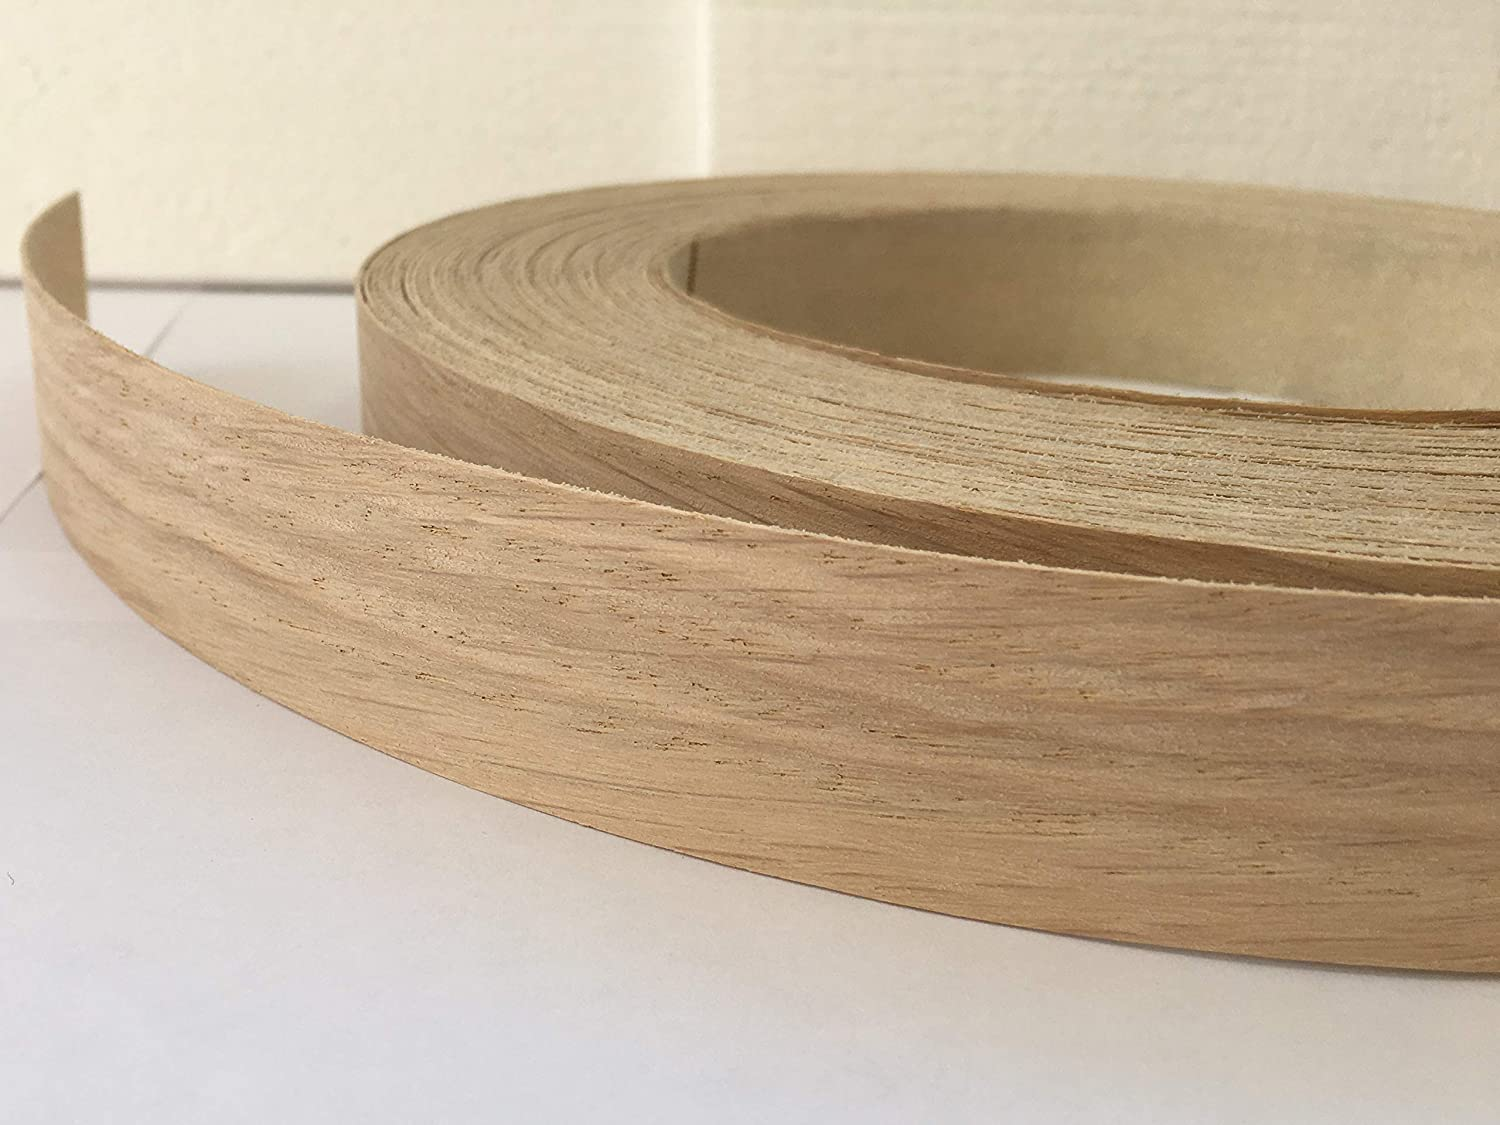 Pre Glued Iron on Oak Wood Veneer Edging Tape 22mm wide x 5 Metres.Free Postage High quality realwood edging